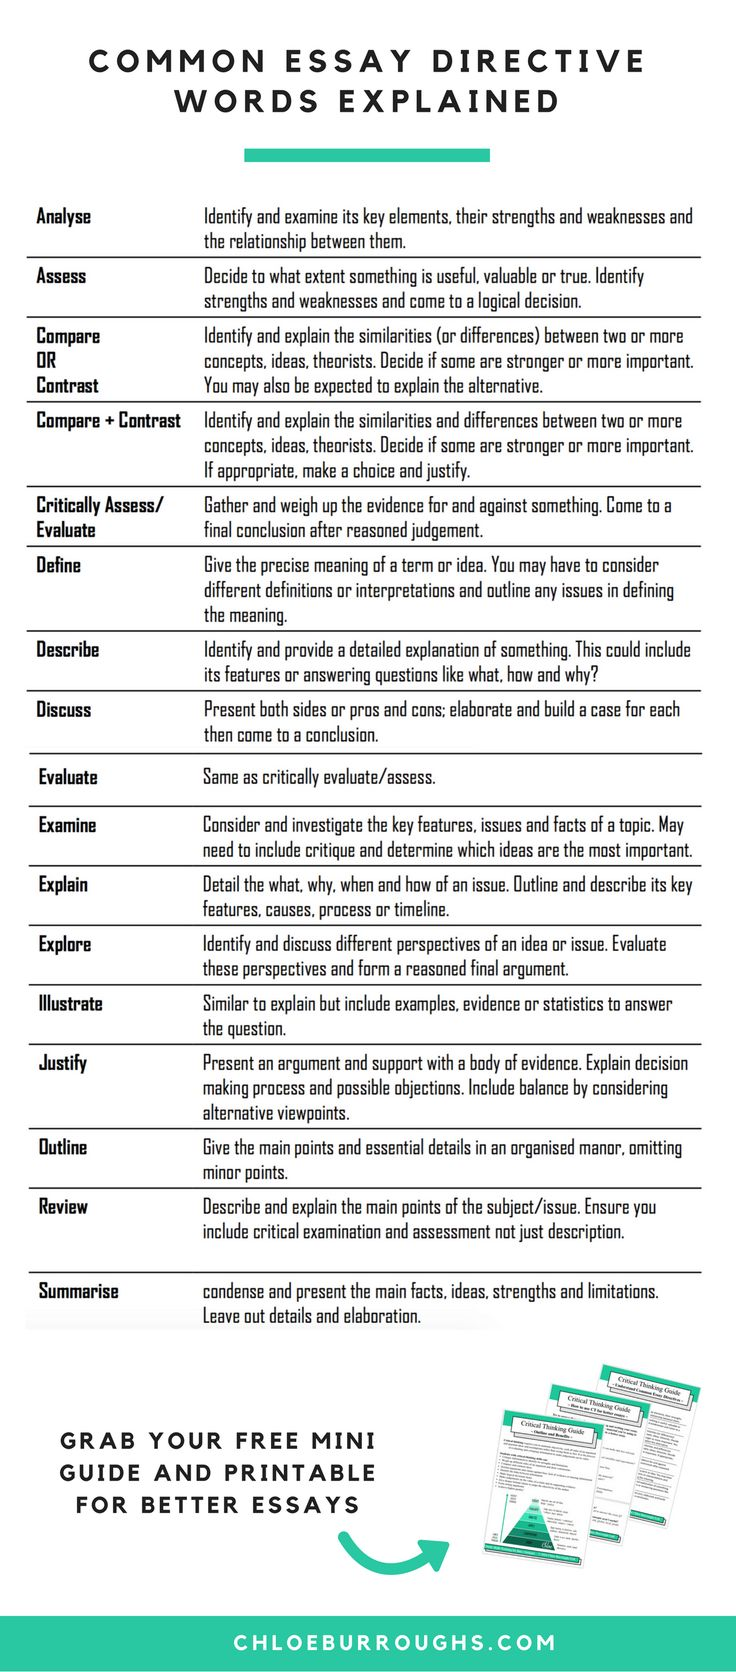 Academic writing help phrases list